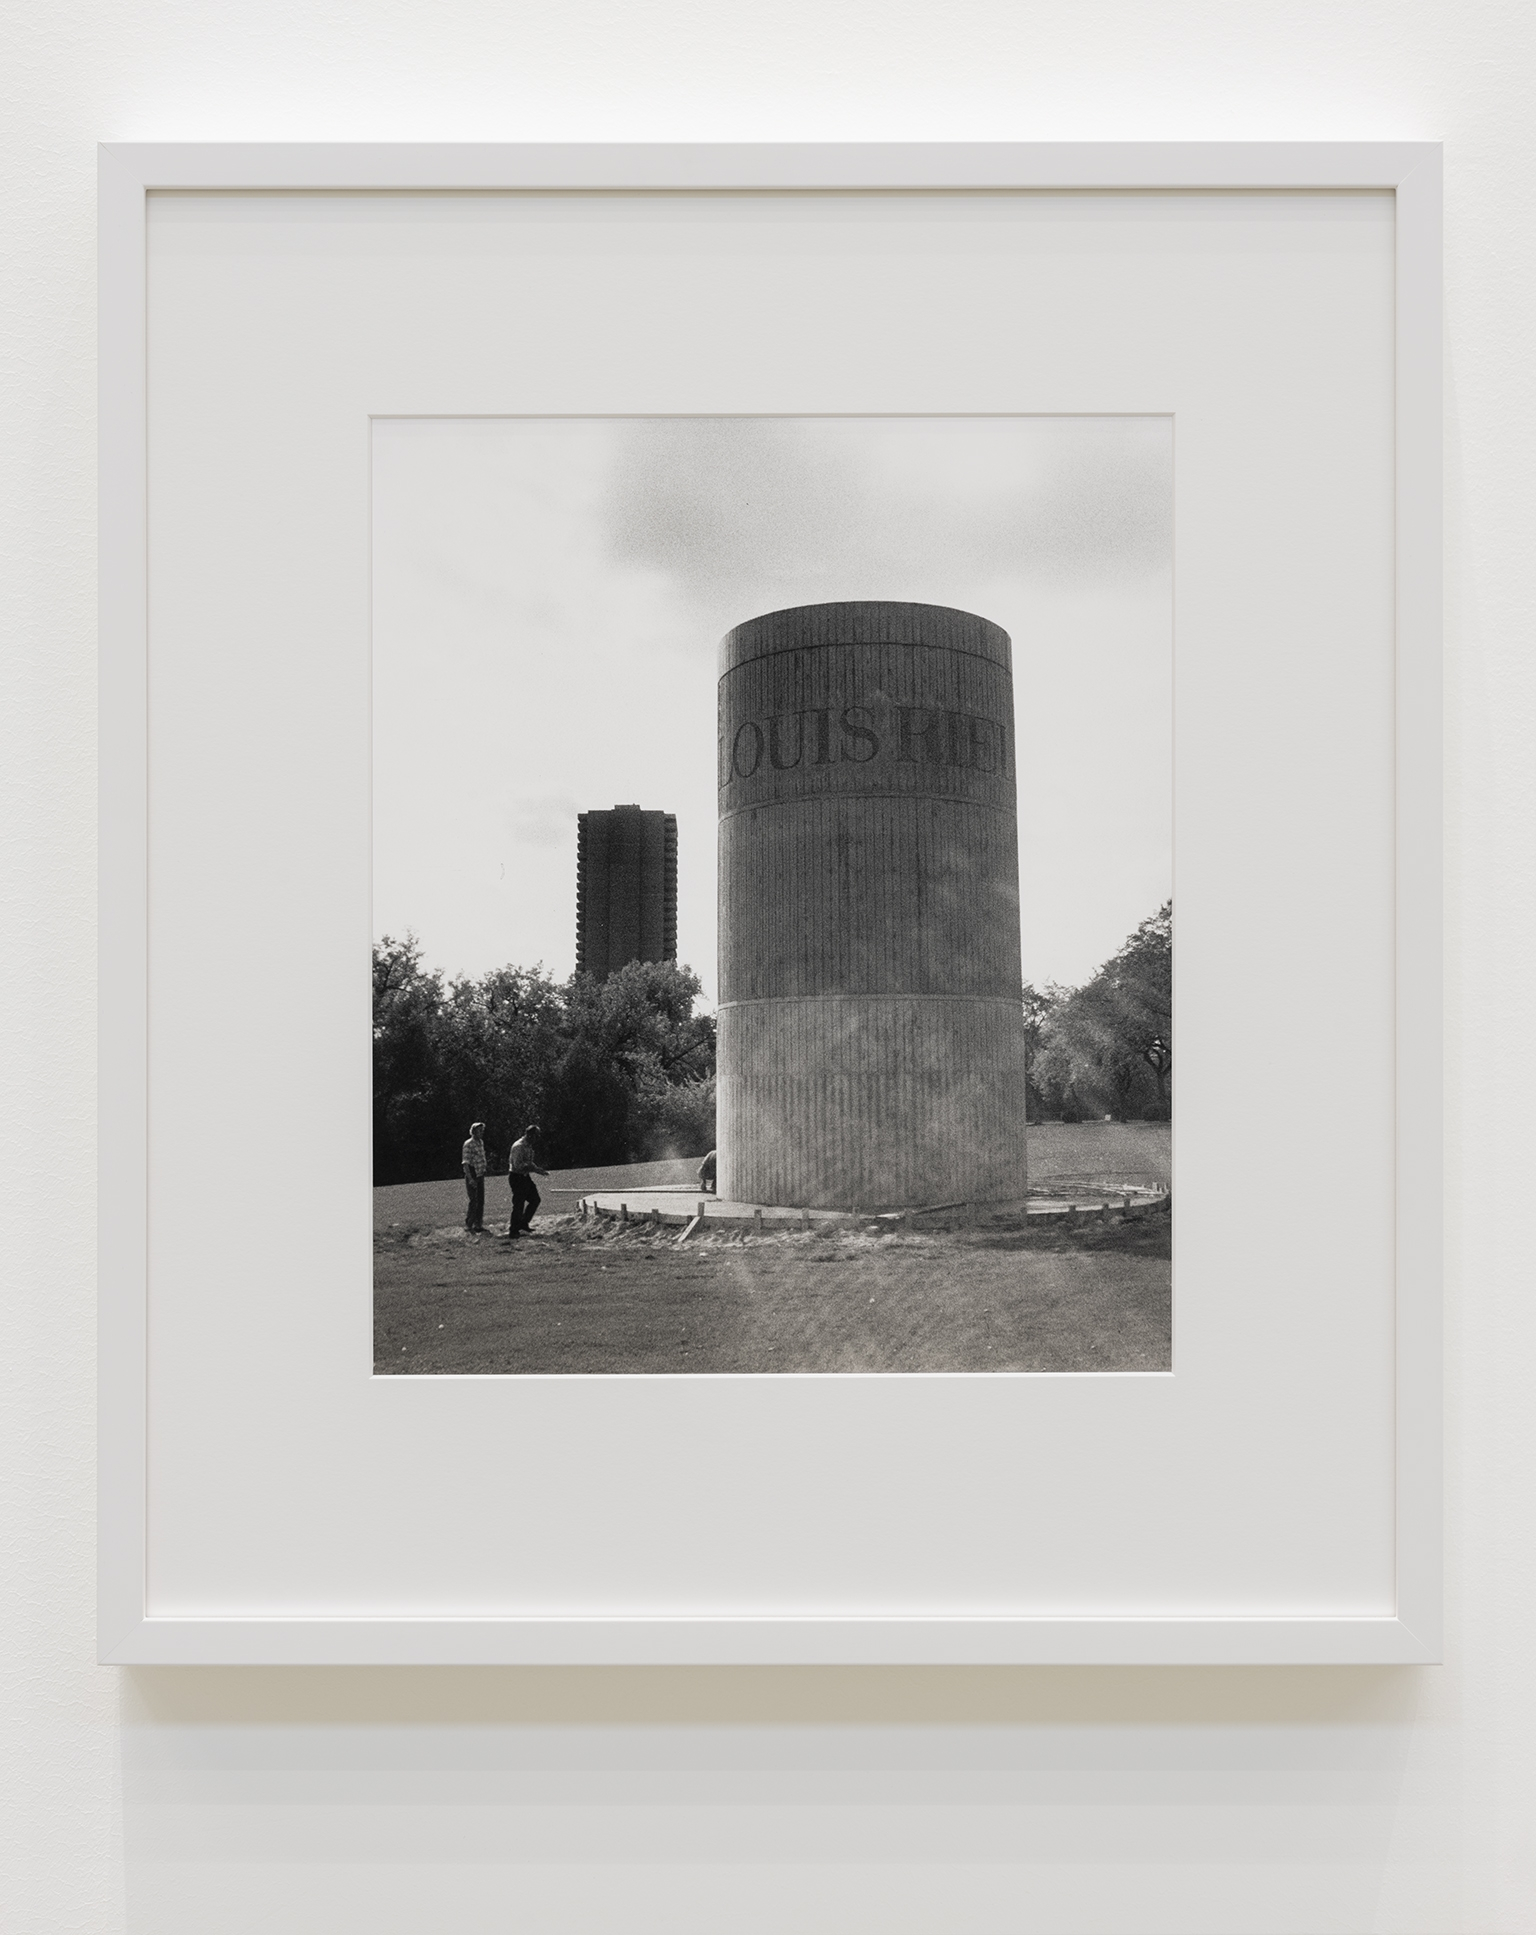 Ian Wallace, Monument to Louis Riel, 1972, silver gelatin print, 20 x 18 in. (50 x 44 cm) by